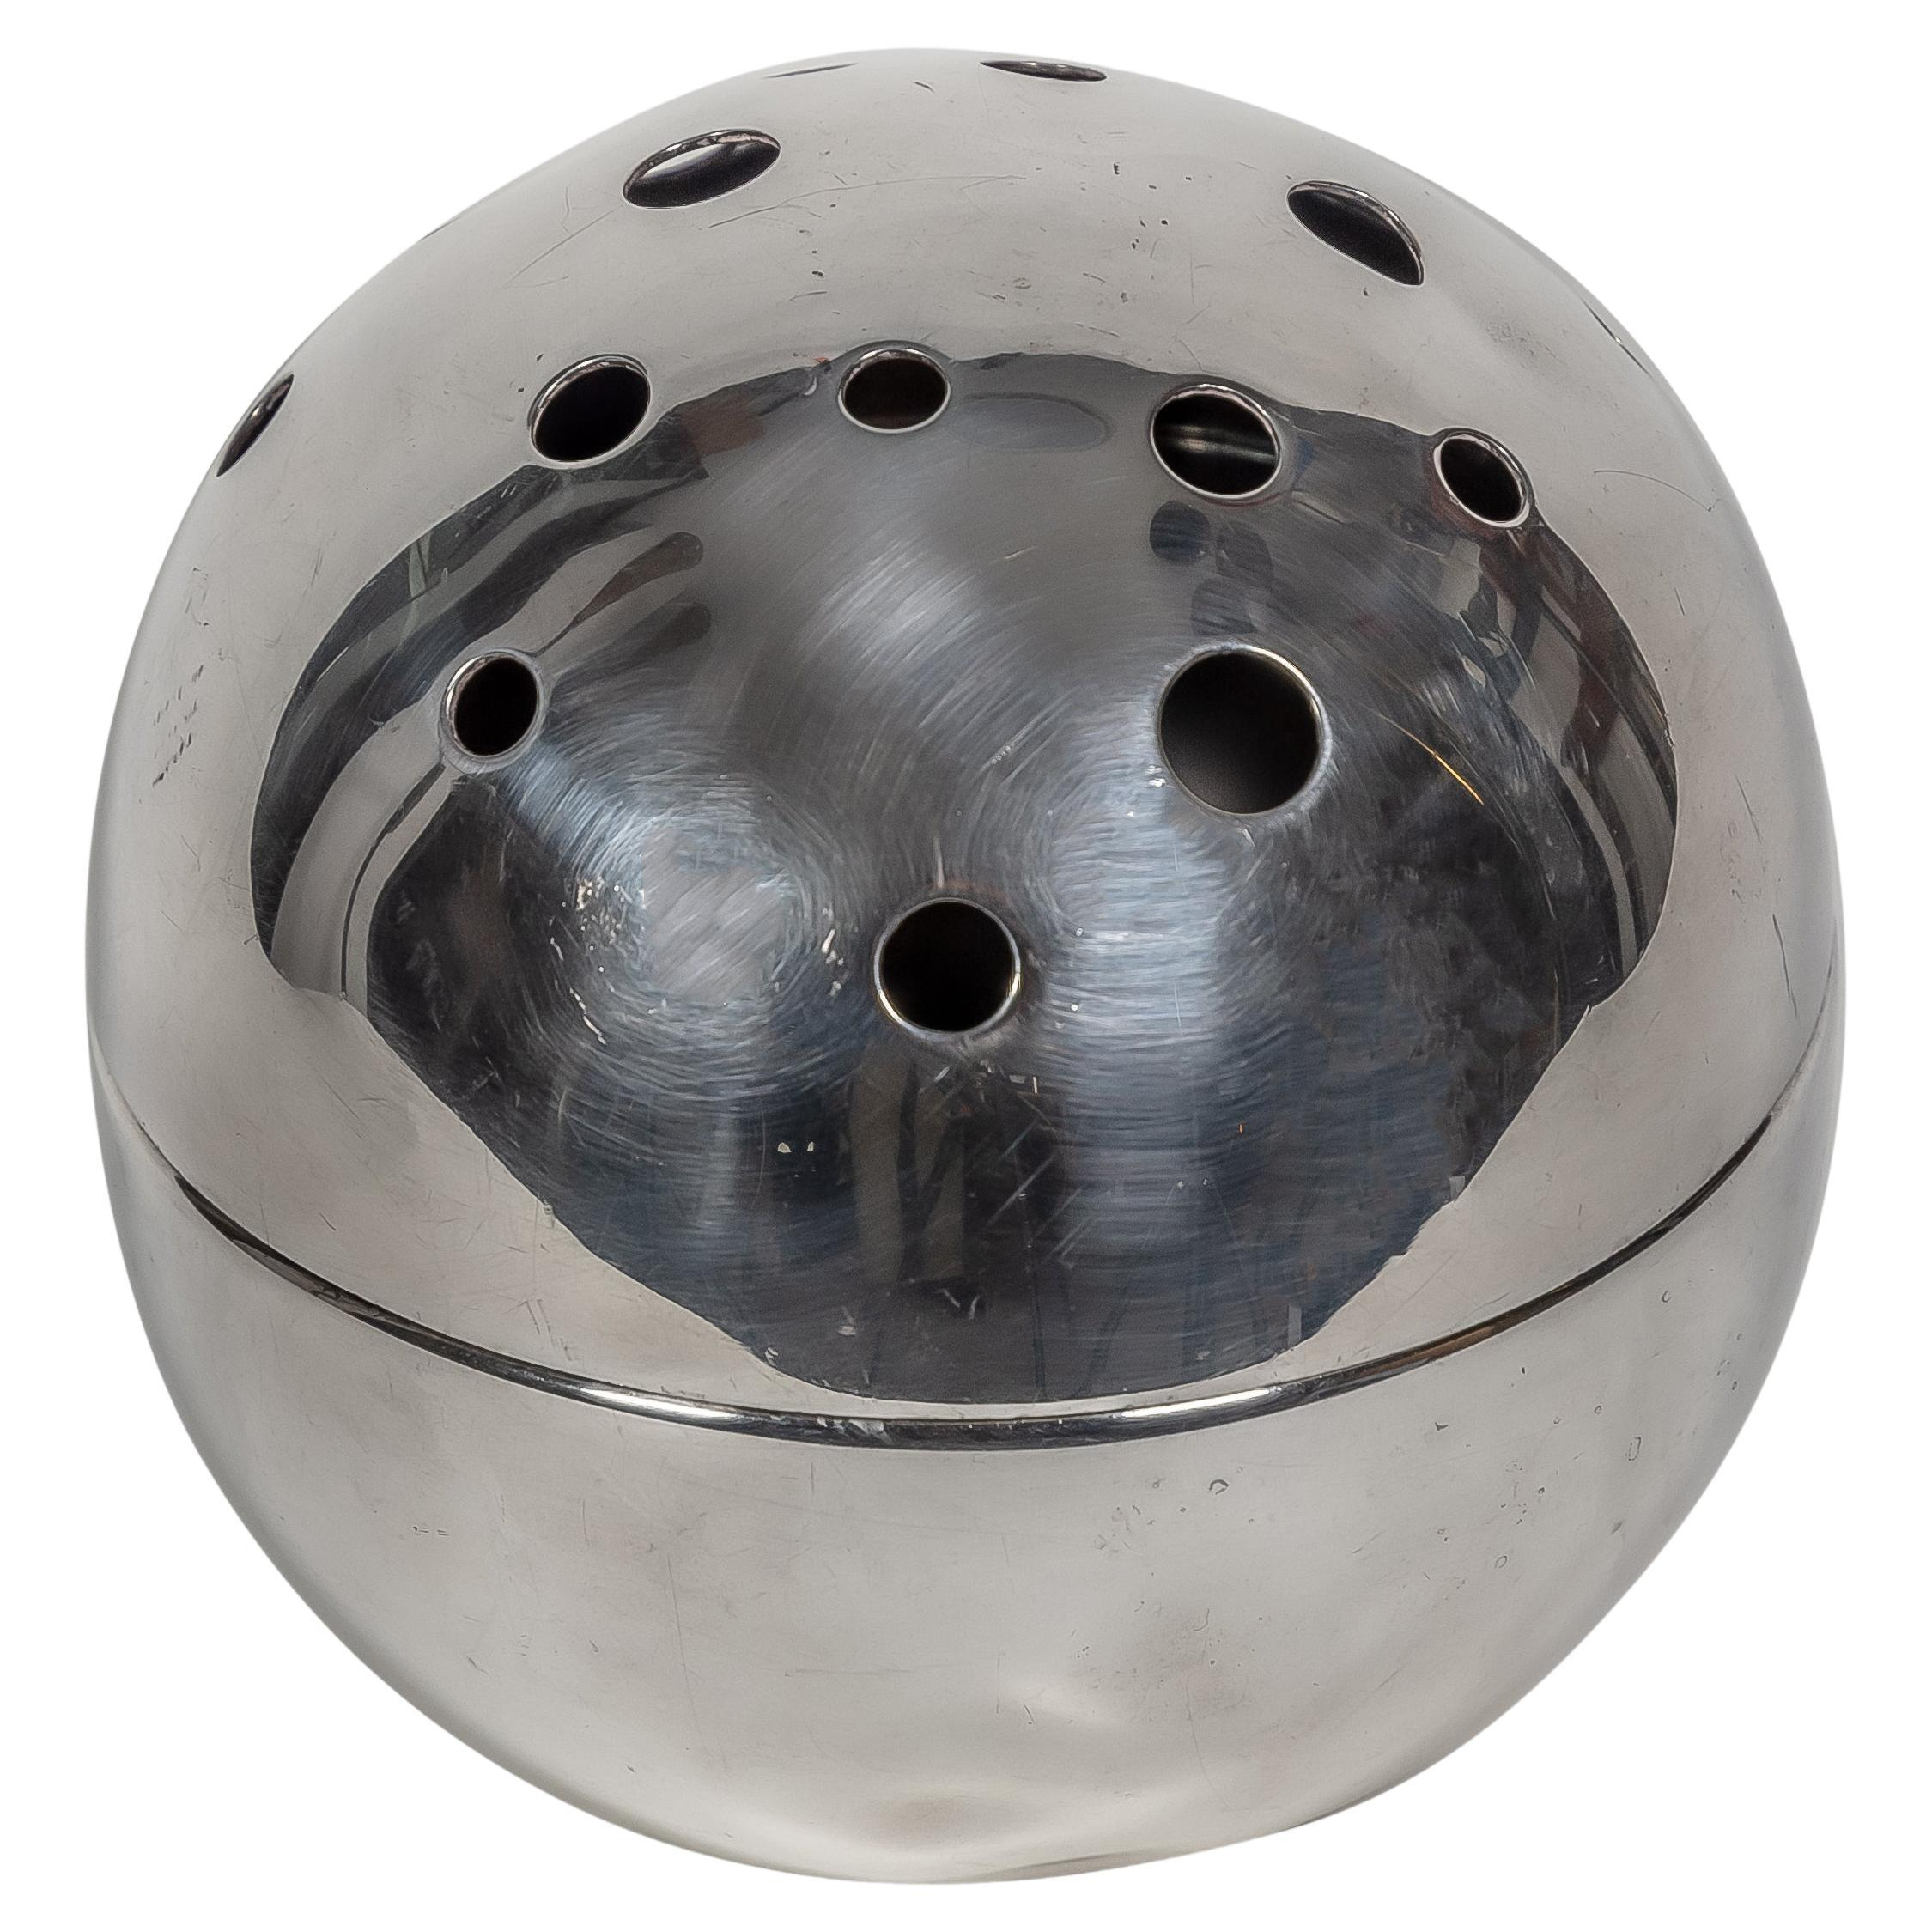 1957 Spherical Flower Holder Silver Plated Metal by Gio Ponti for Christofle